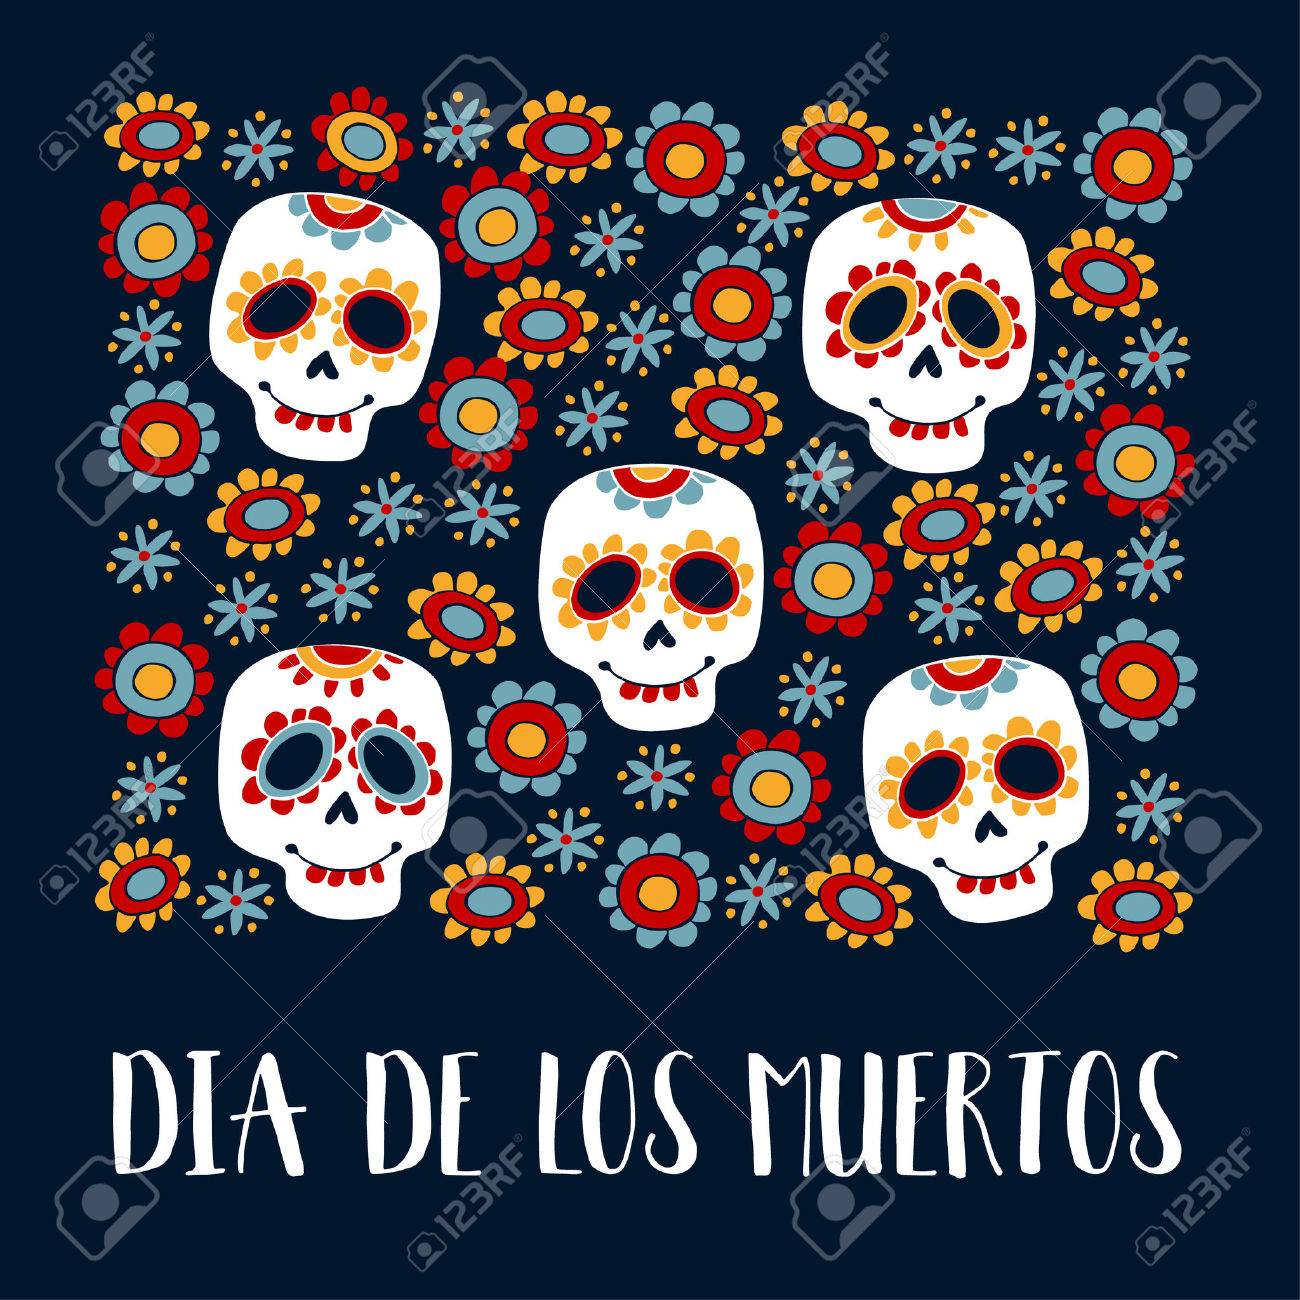 Day of the dead greeting choice image greetings card design simple dia de los muertos greeting card invitation mexican day of the dead m4hsunfo